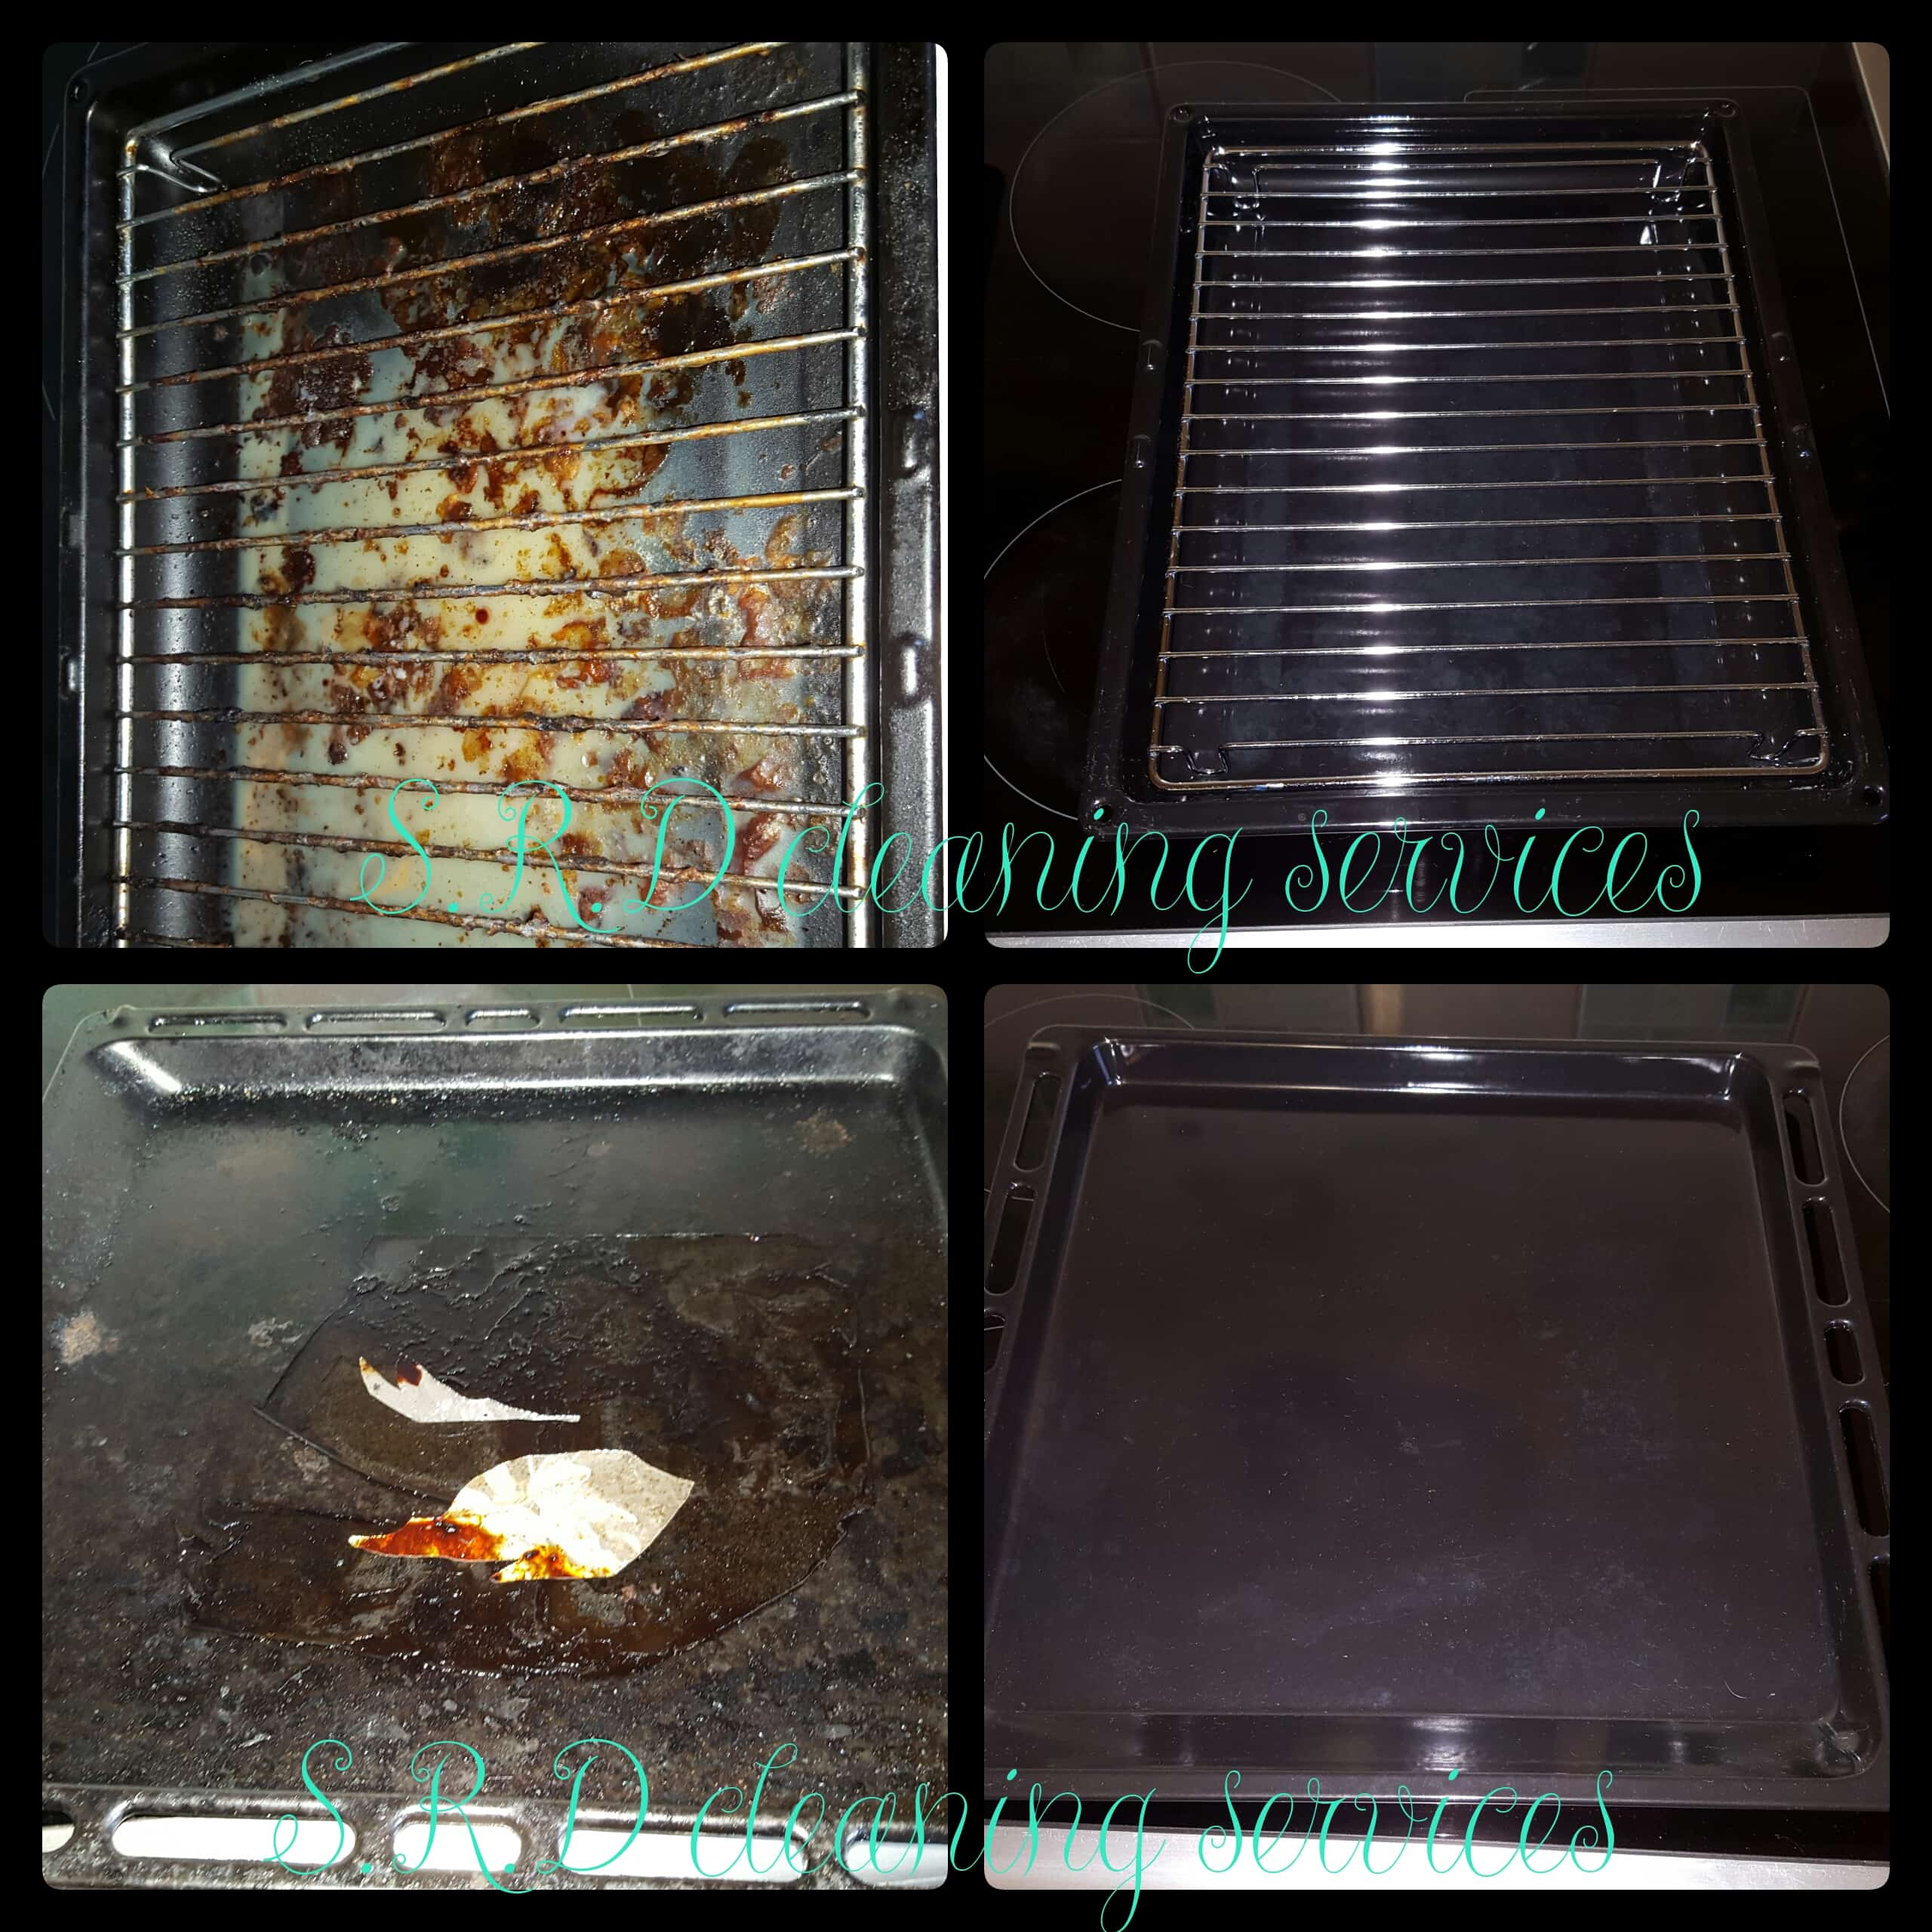 Srd cleaning services contact us direct - Clean oven tray less minute ...